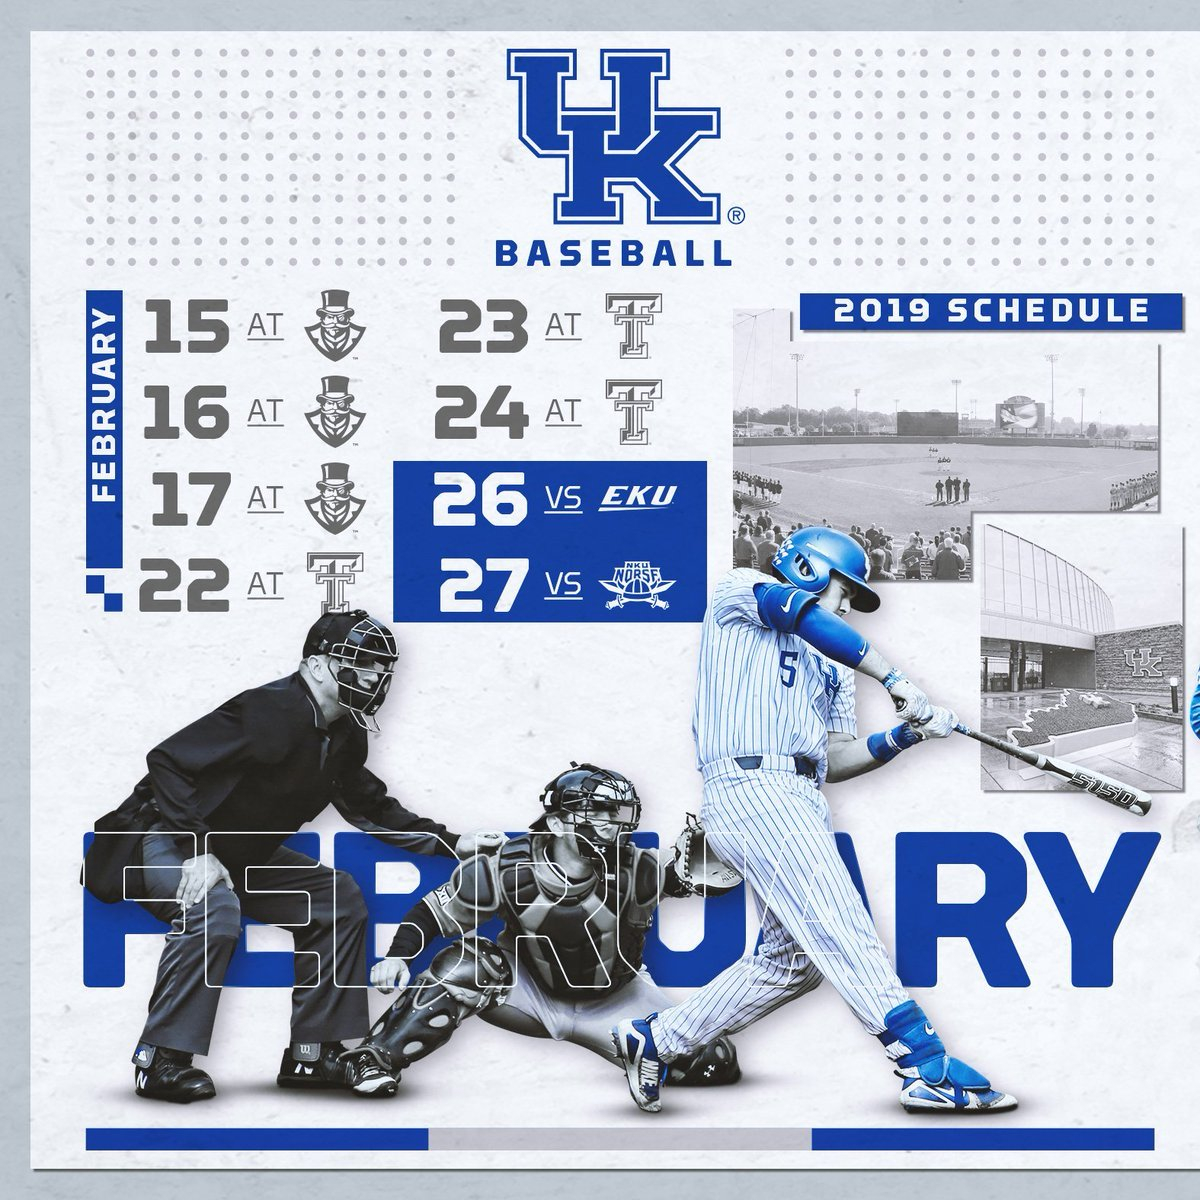 "Kentucky Baseball On Twitter: ""mark Your Calendar #bbn, The 2019 Bb&n Calendar 2019"